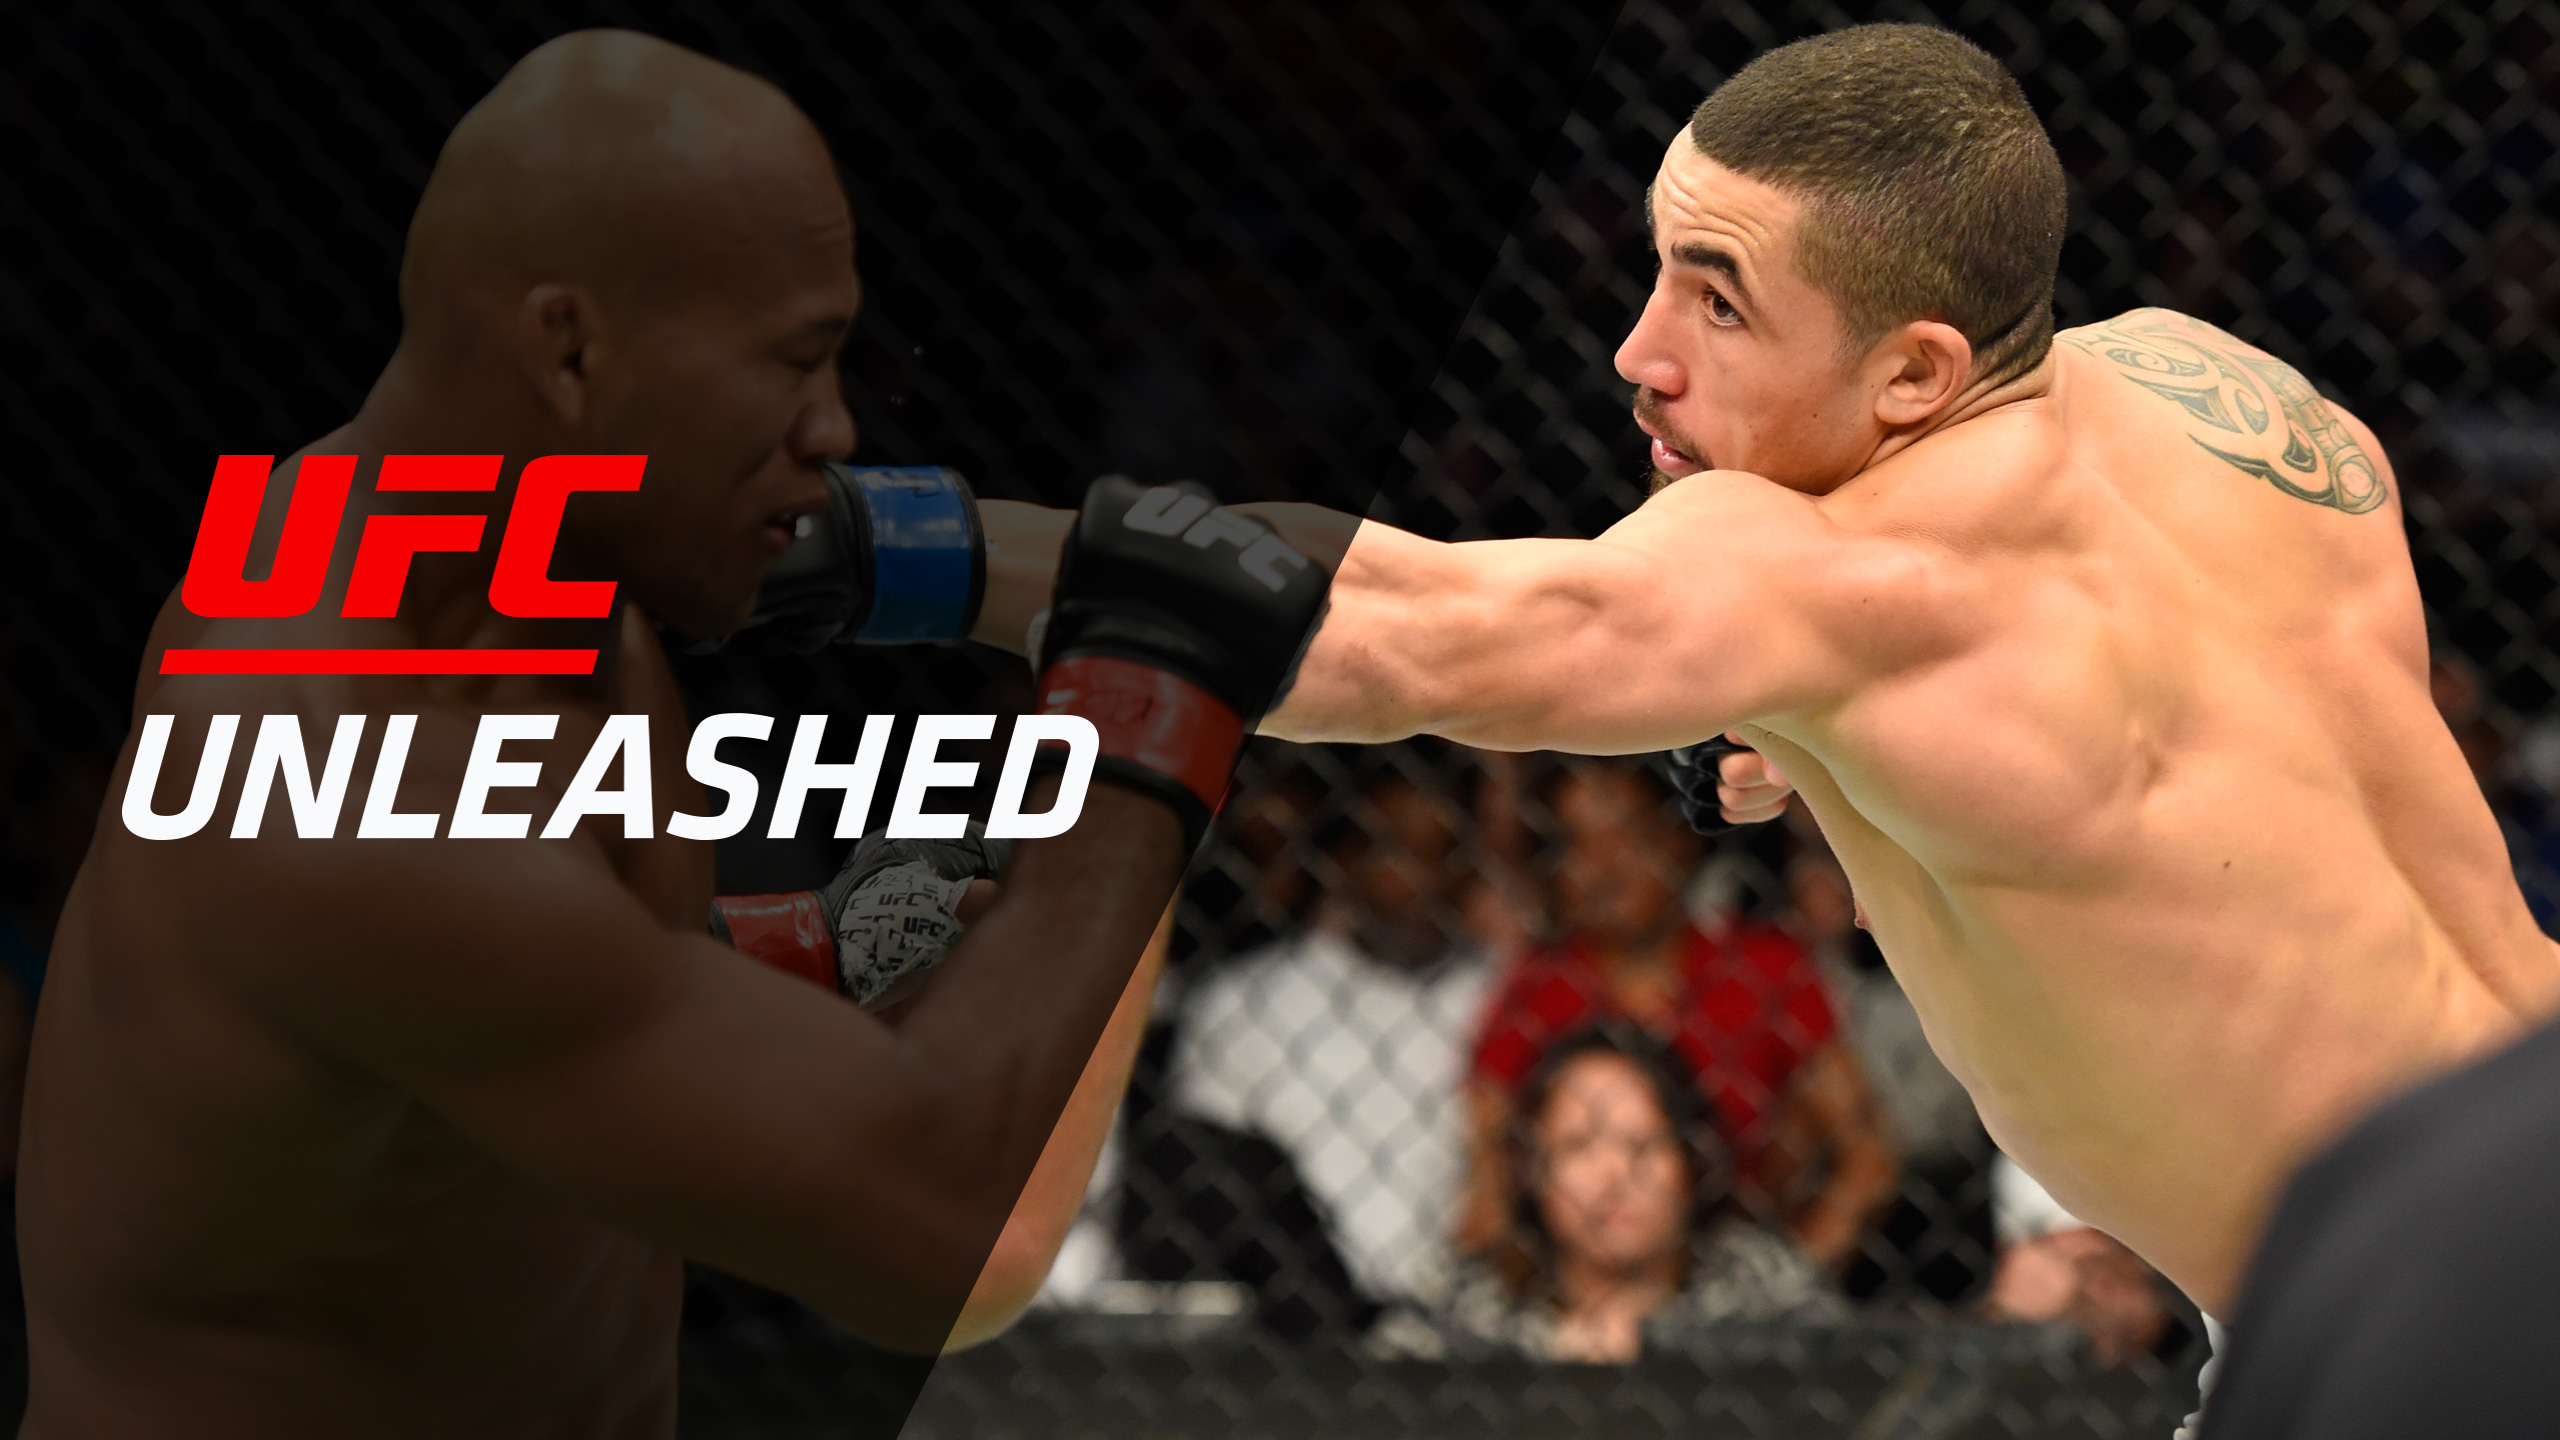 UFC Unleashed: Whittaker vs. Souza